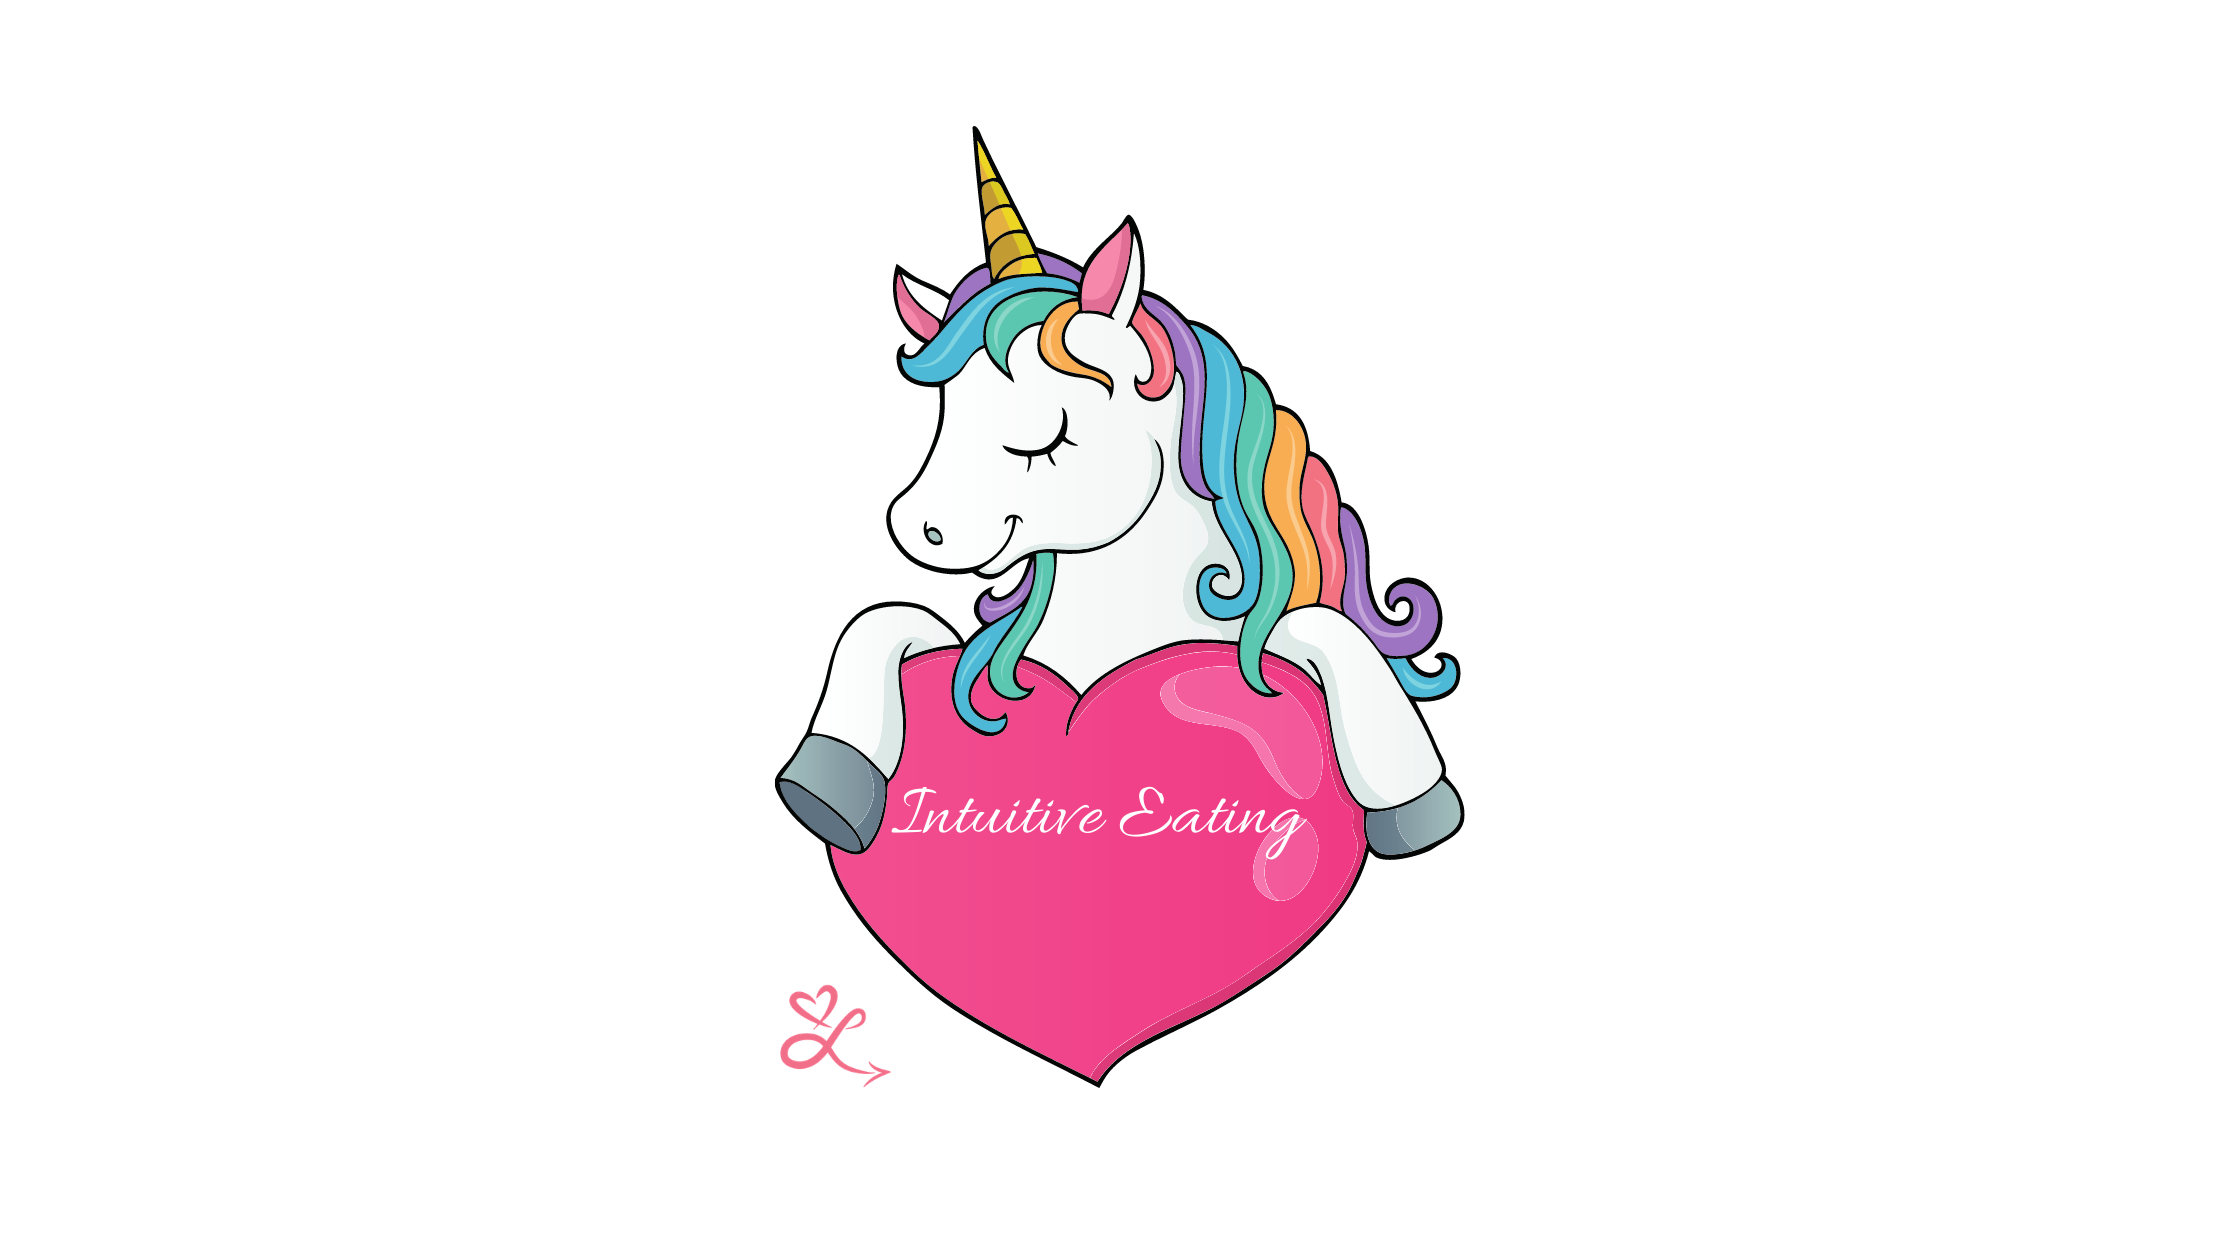 """A mythical creature holding a heart with """"intuitive eating"""" written on it to represent the myths of IE."""